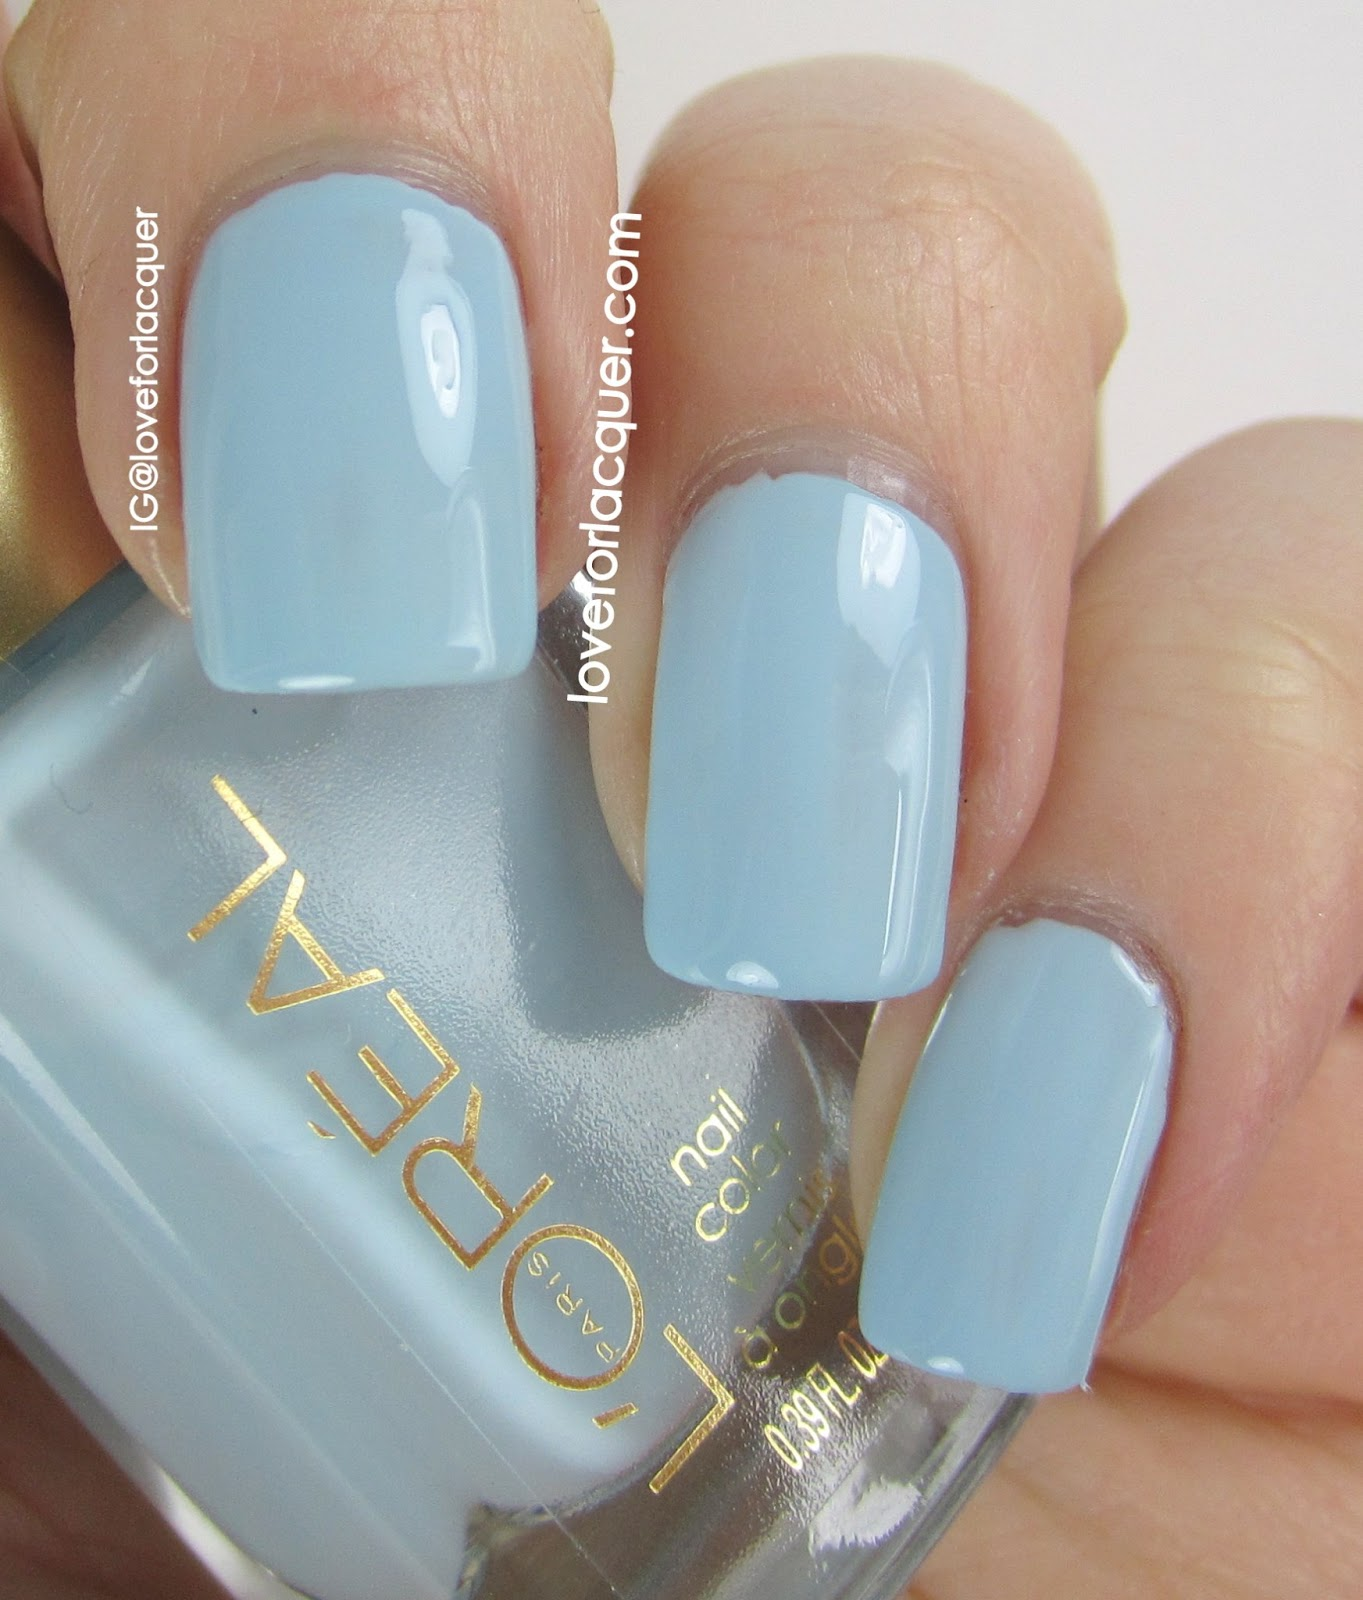 Loreal Spring Versailles Romance Swatches & Review - Love for Lacquer